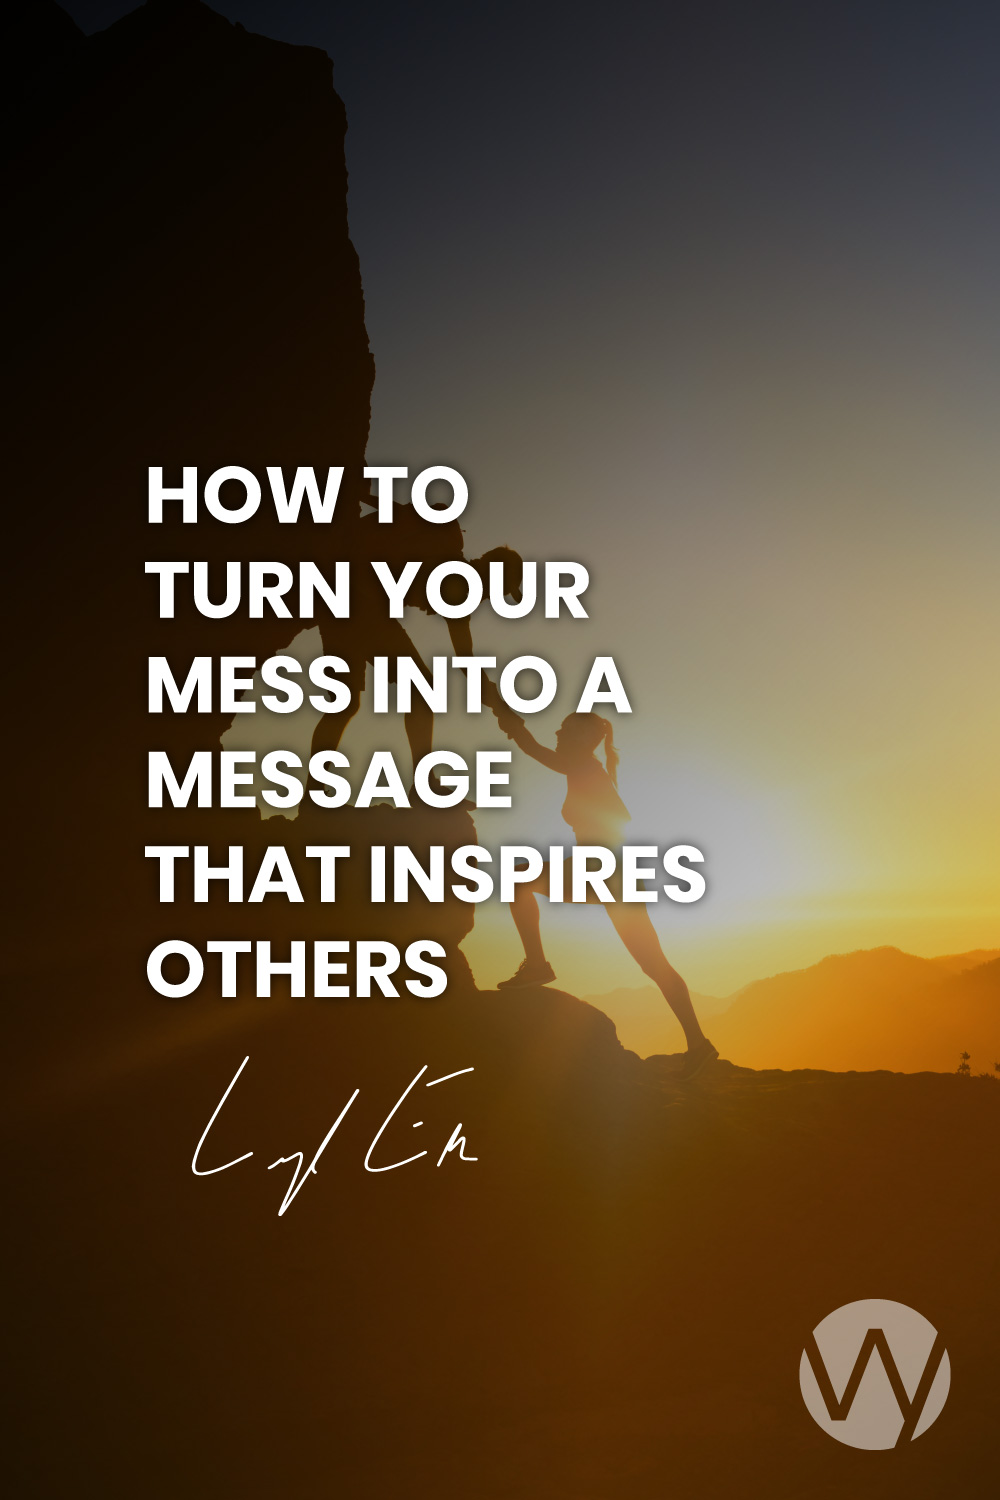 How to Turn Your Mess into a Message that Inspires Others